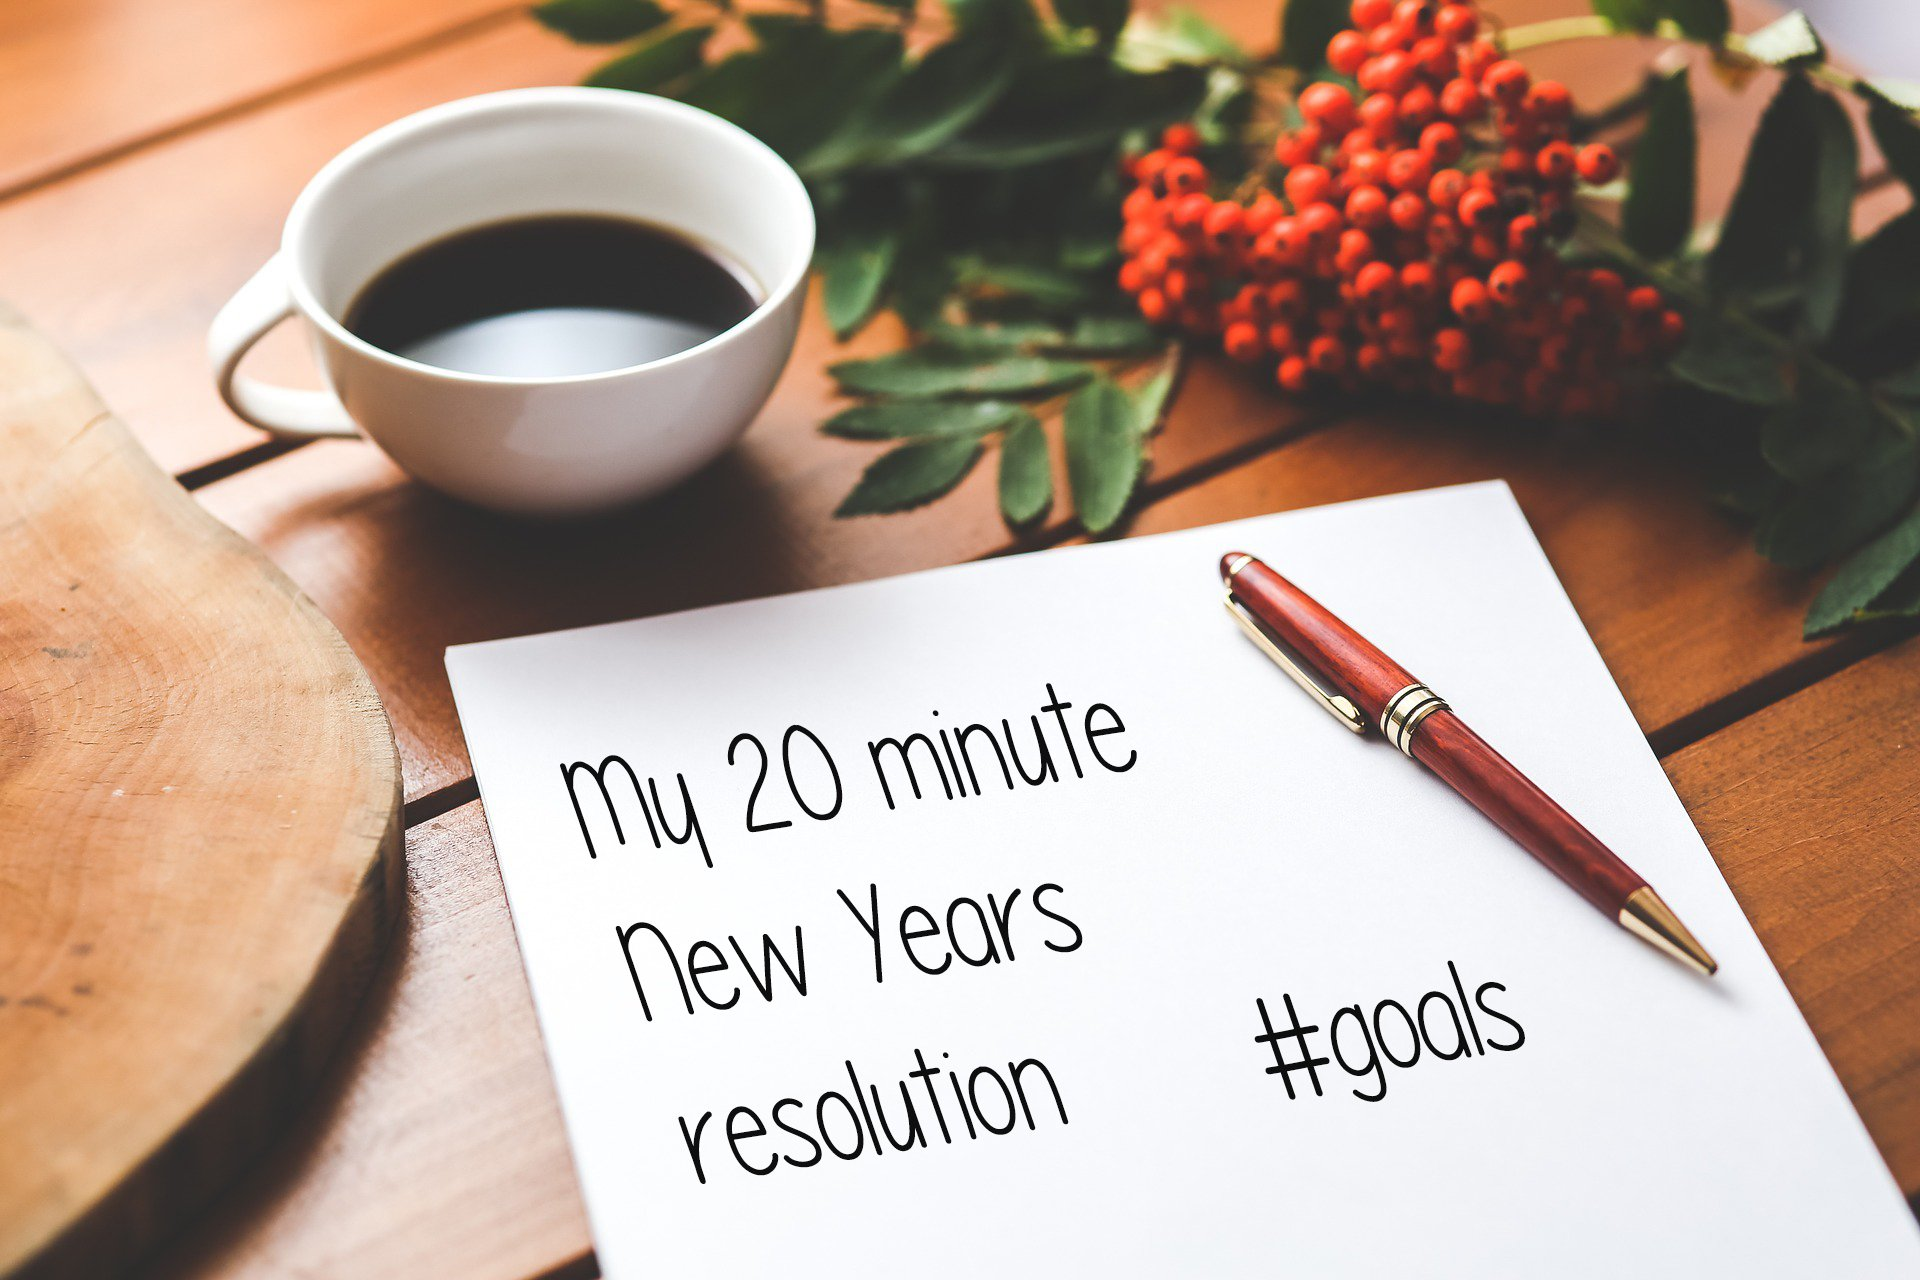 My 20 Minute New Year's Resolution